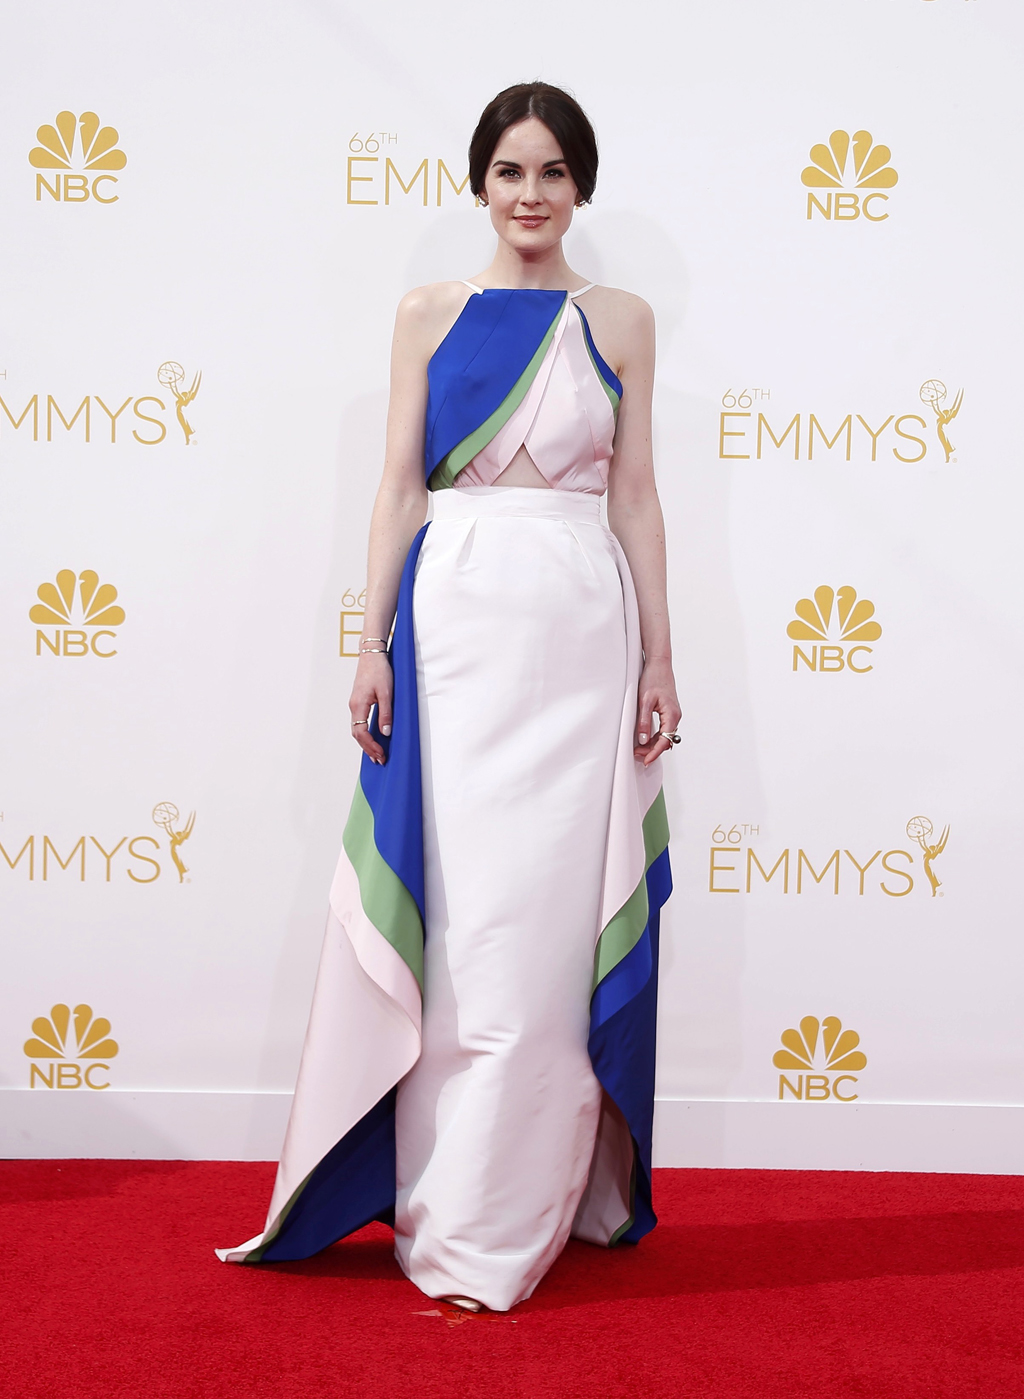 Michelle Dockery arrives at the 66th Primetime Emmy Awards in Los Angeles